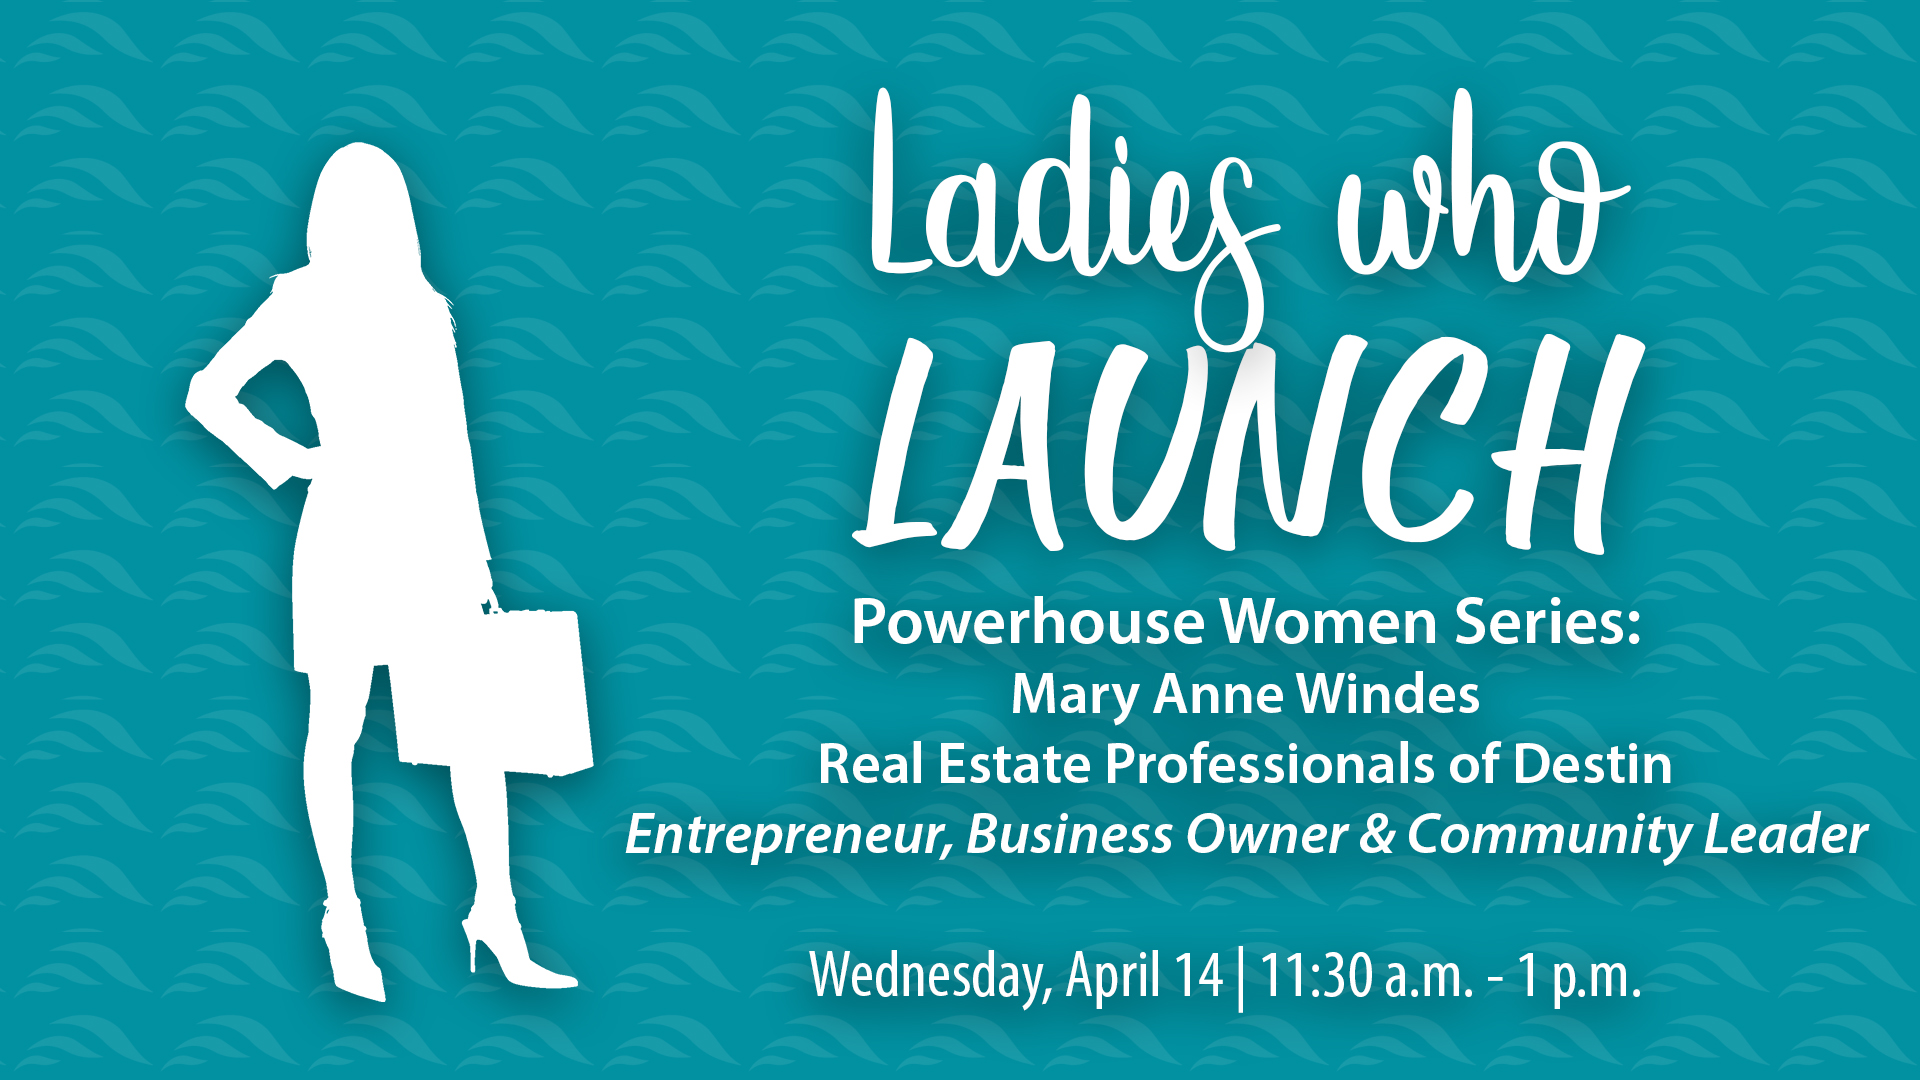 Ladies Who Launch Mary Anne Windes